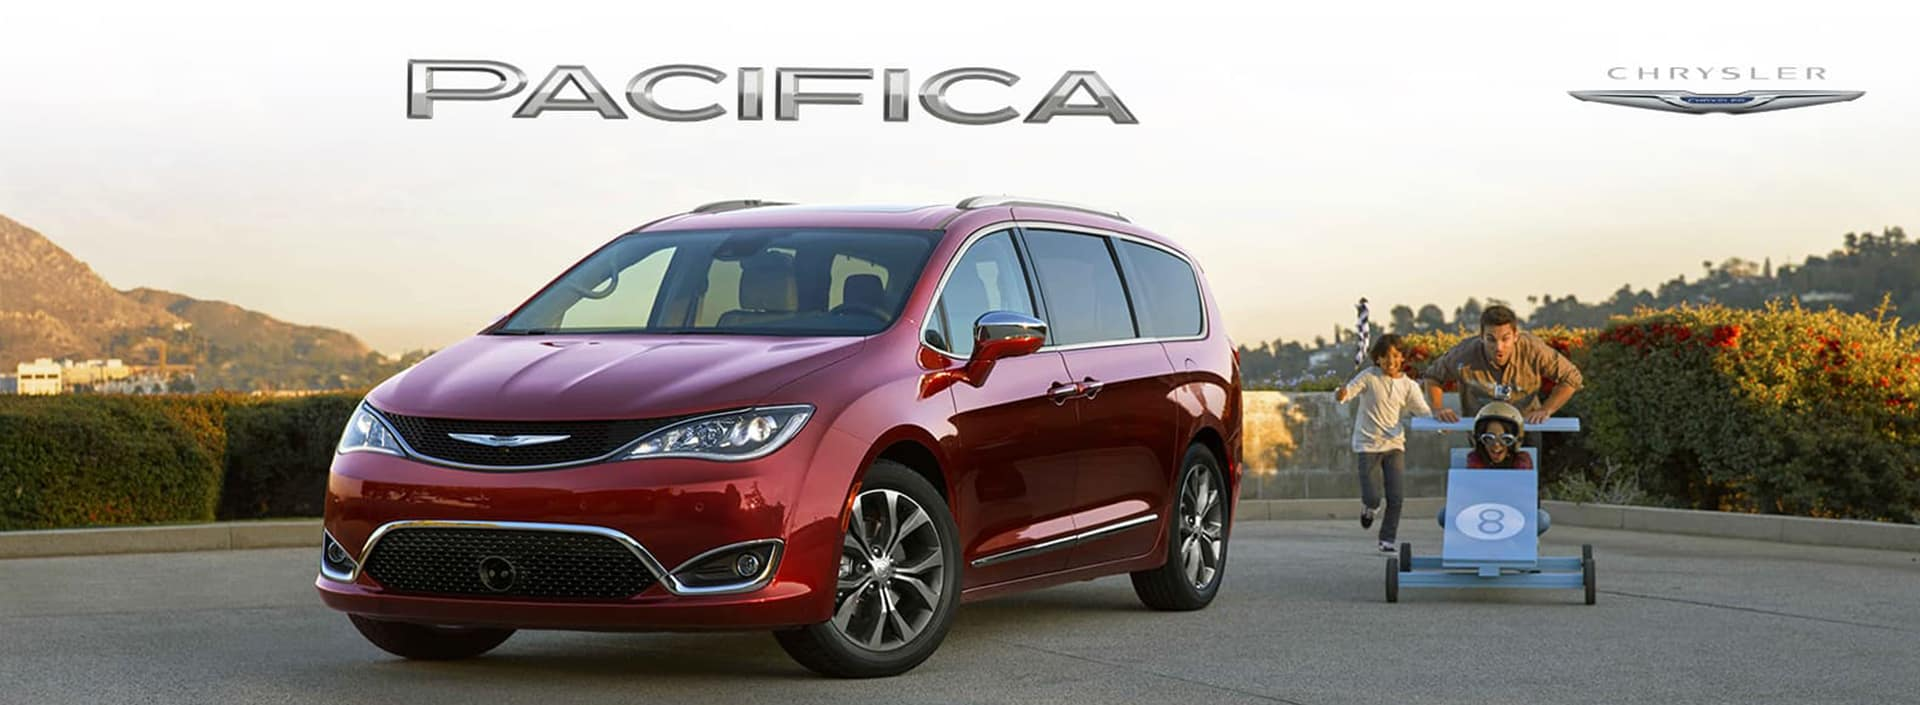 Chrysler Pacifica parked in a parking lot with a family right outside of it